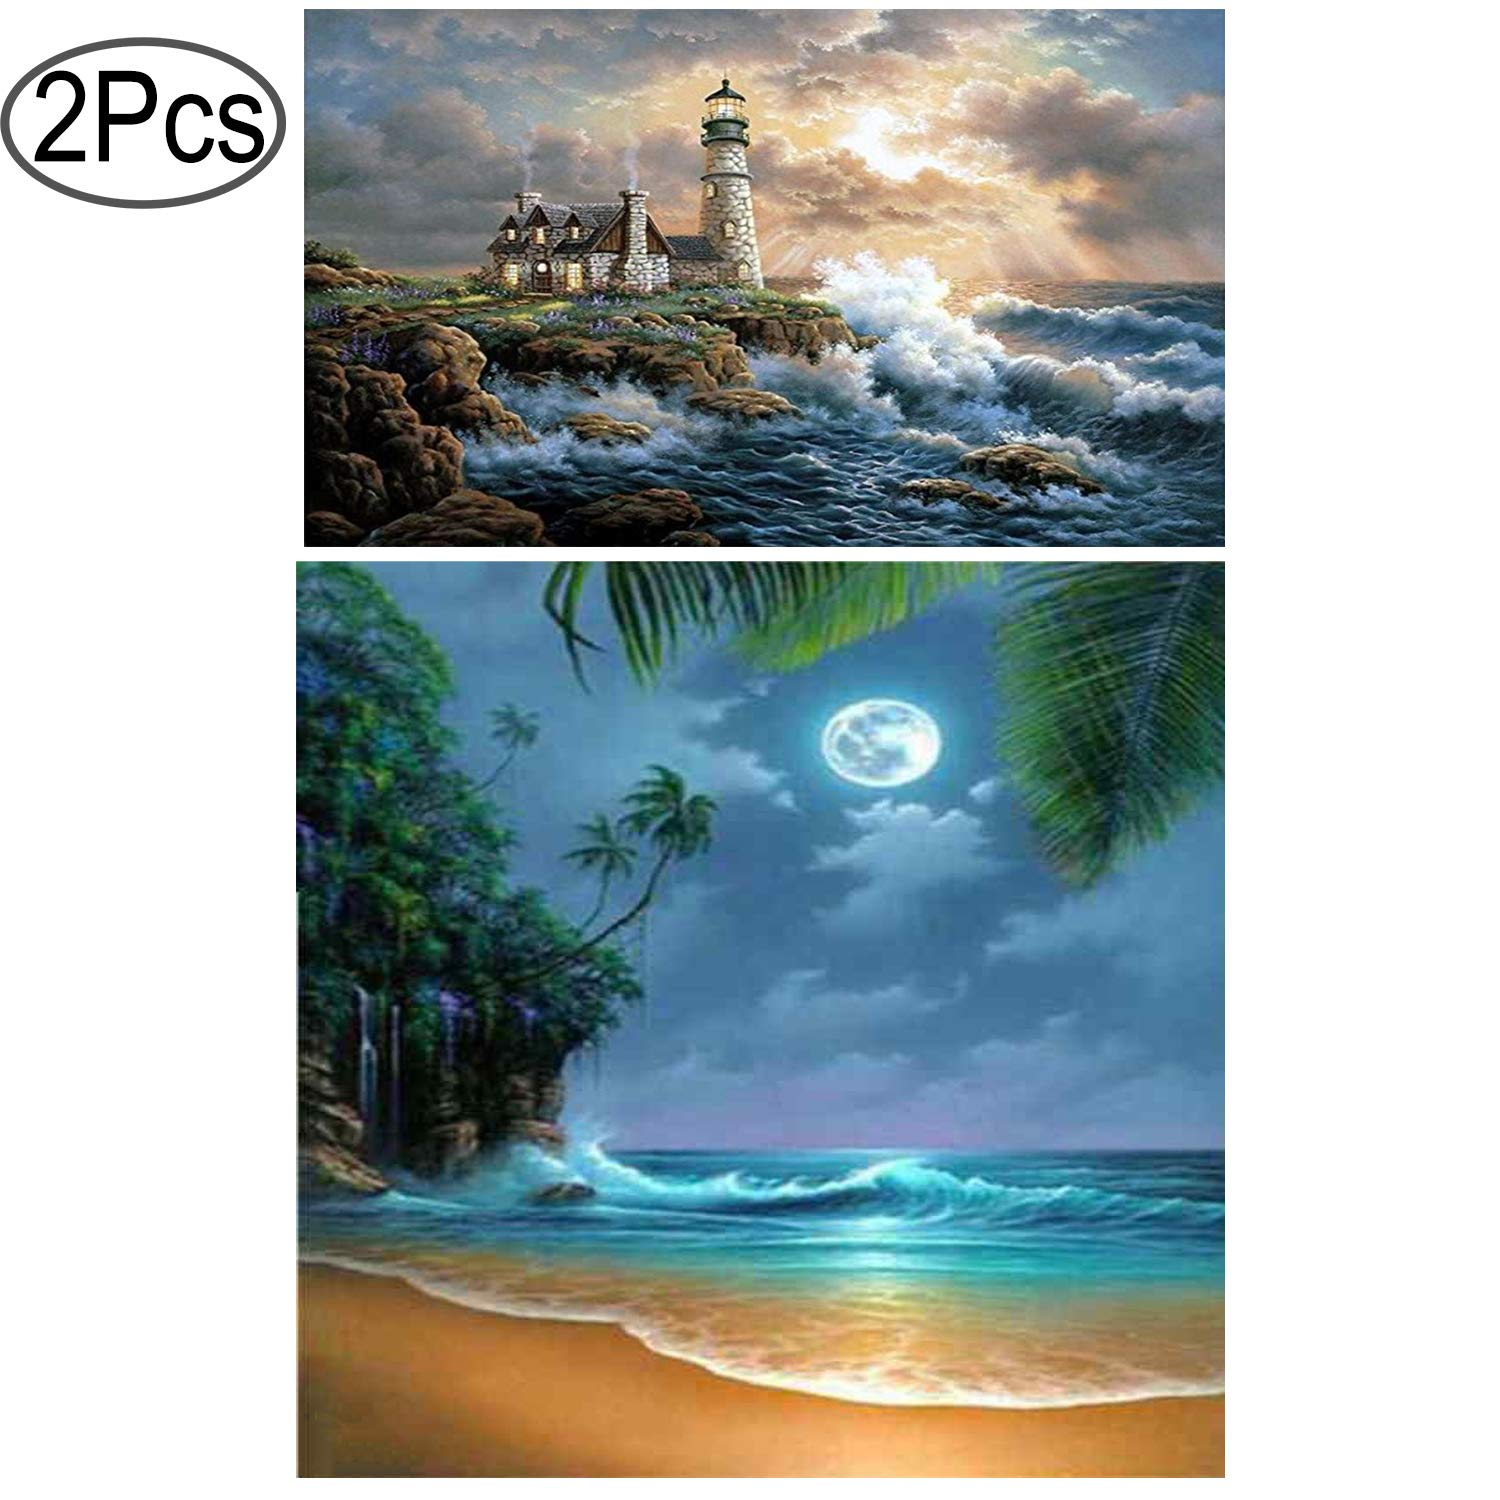 Standie 2 Pack Diamond Painting 5D Full Diamond Embroidery Rhinestone Cross Stitch Arts DIY Decorating Wall Stickers ( Seaside Scenery 45 x 35cm & Moonlight 40 x 30cm ) by